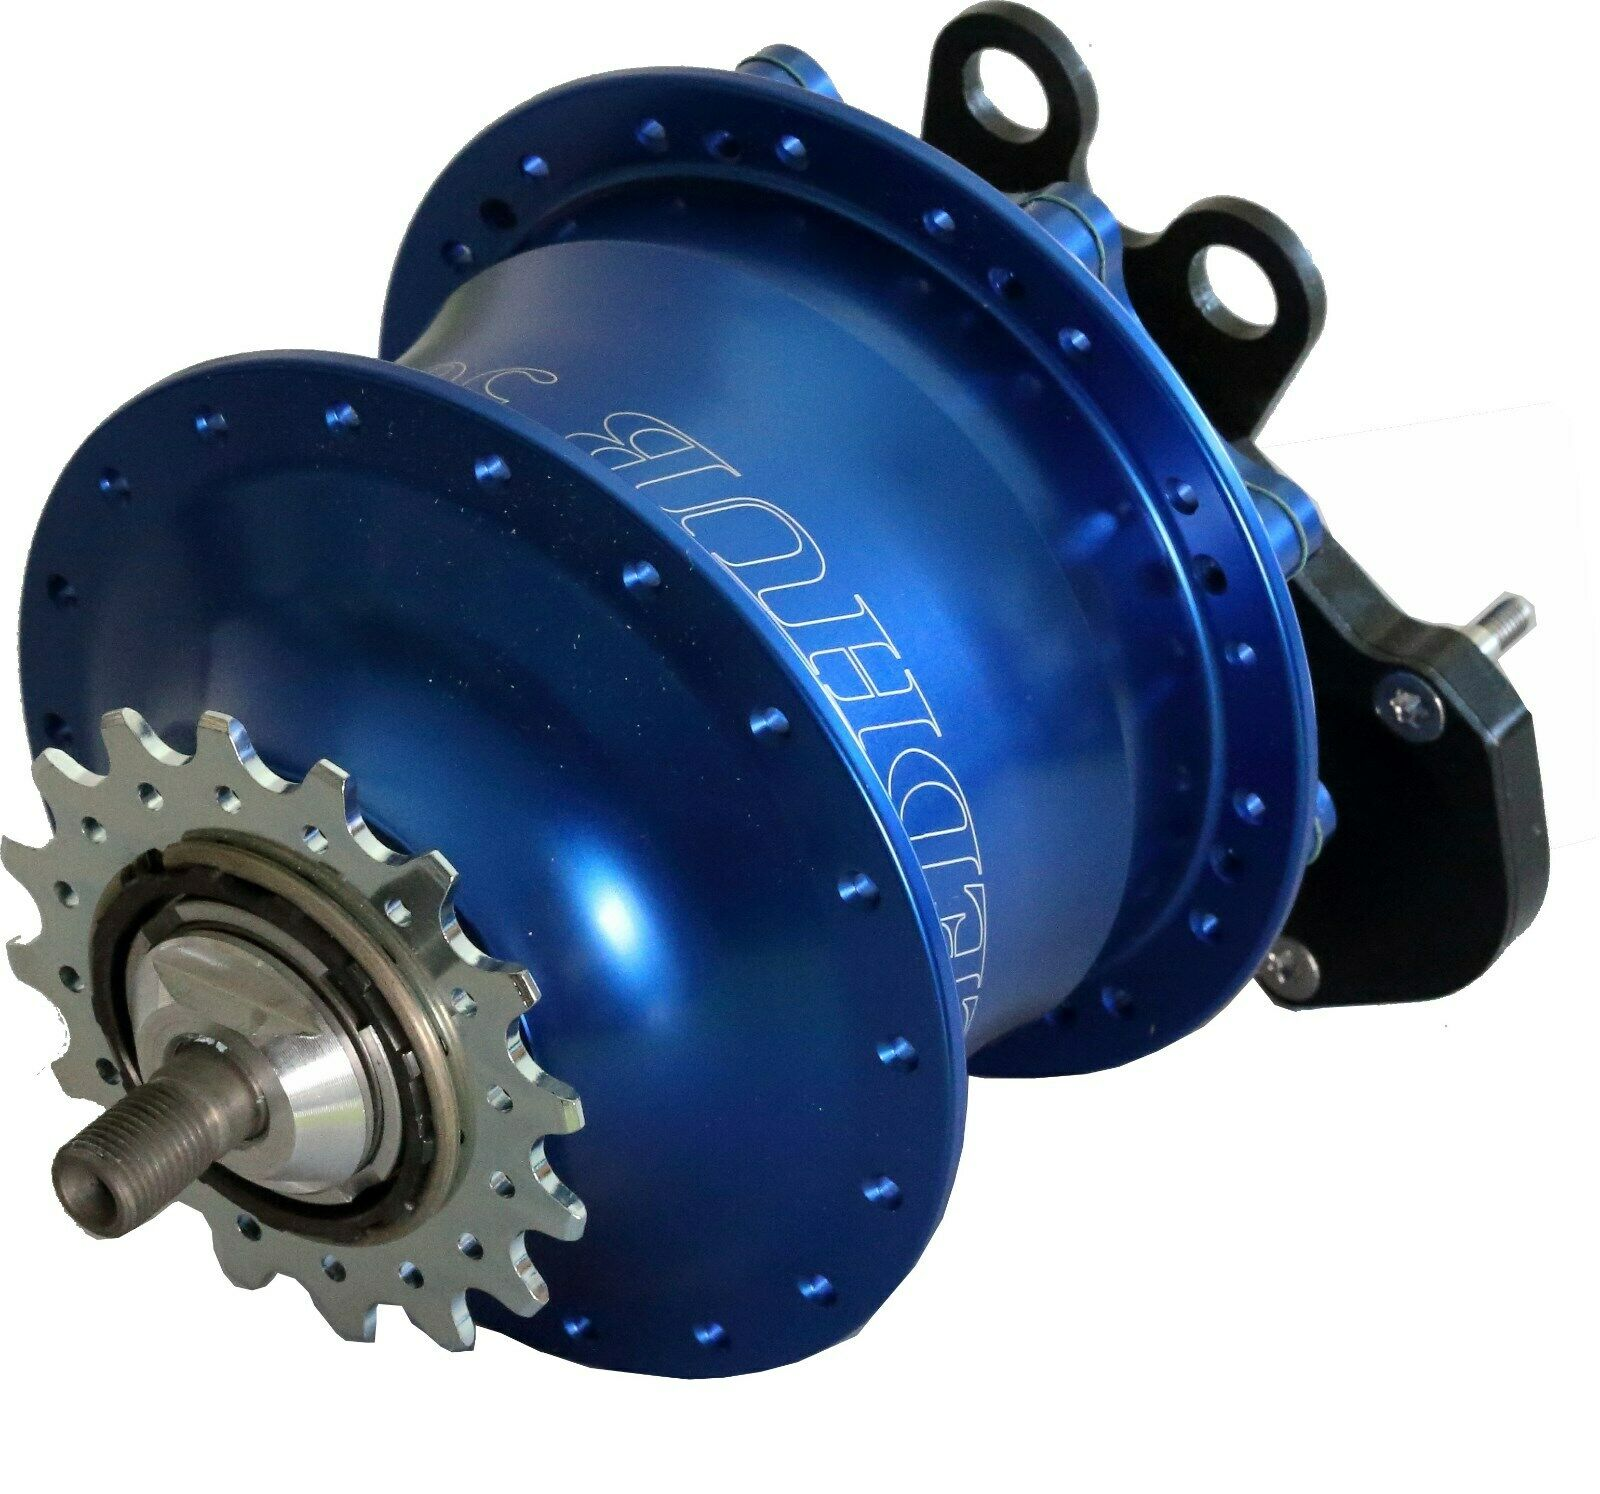 Rohloff Speedhub 500 14 bluee for V-Brake, Screw Axis 36-hole   up to 42% off